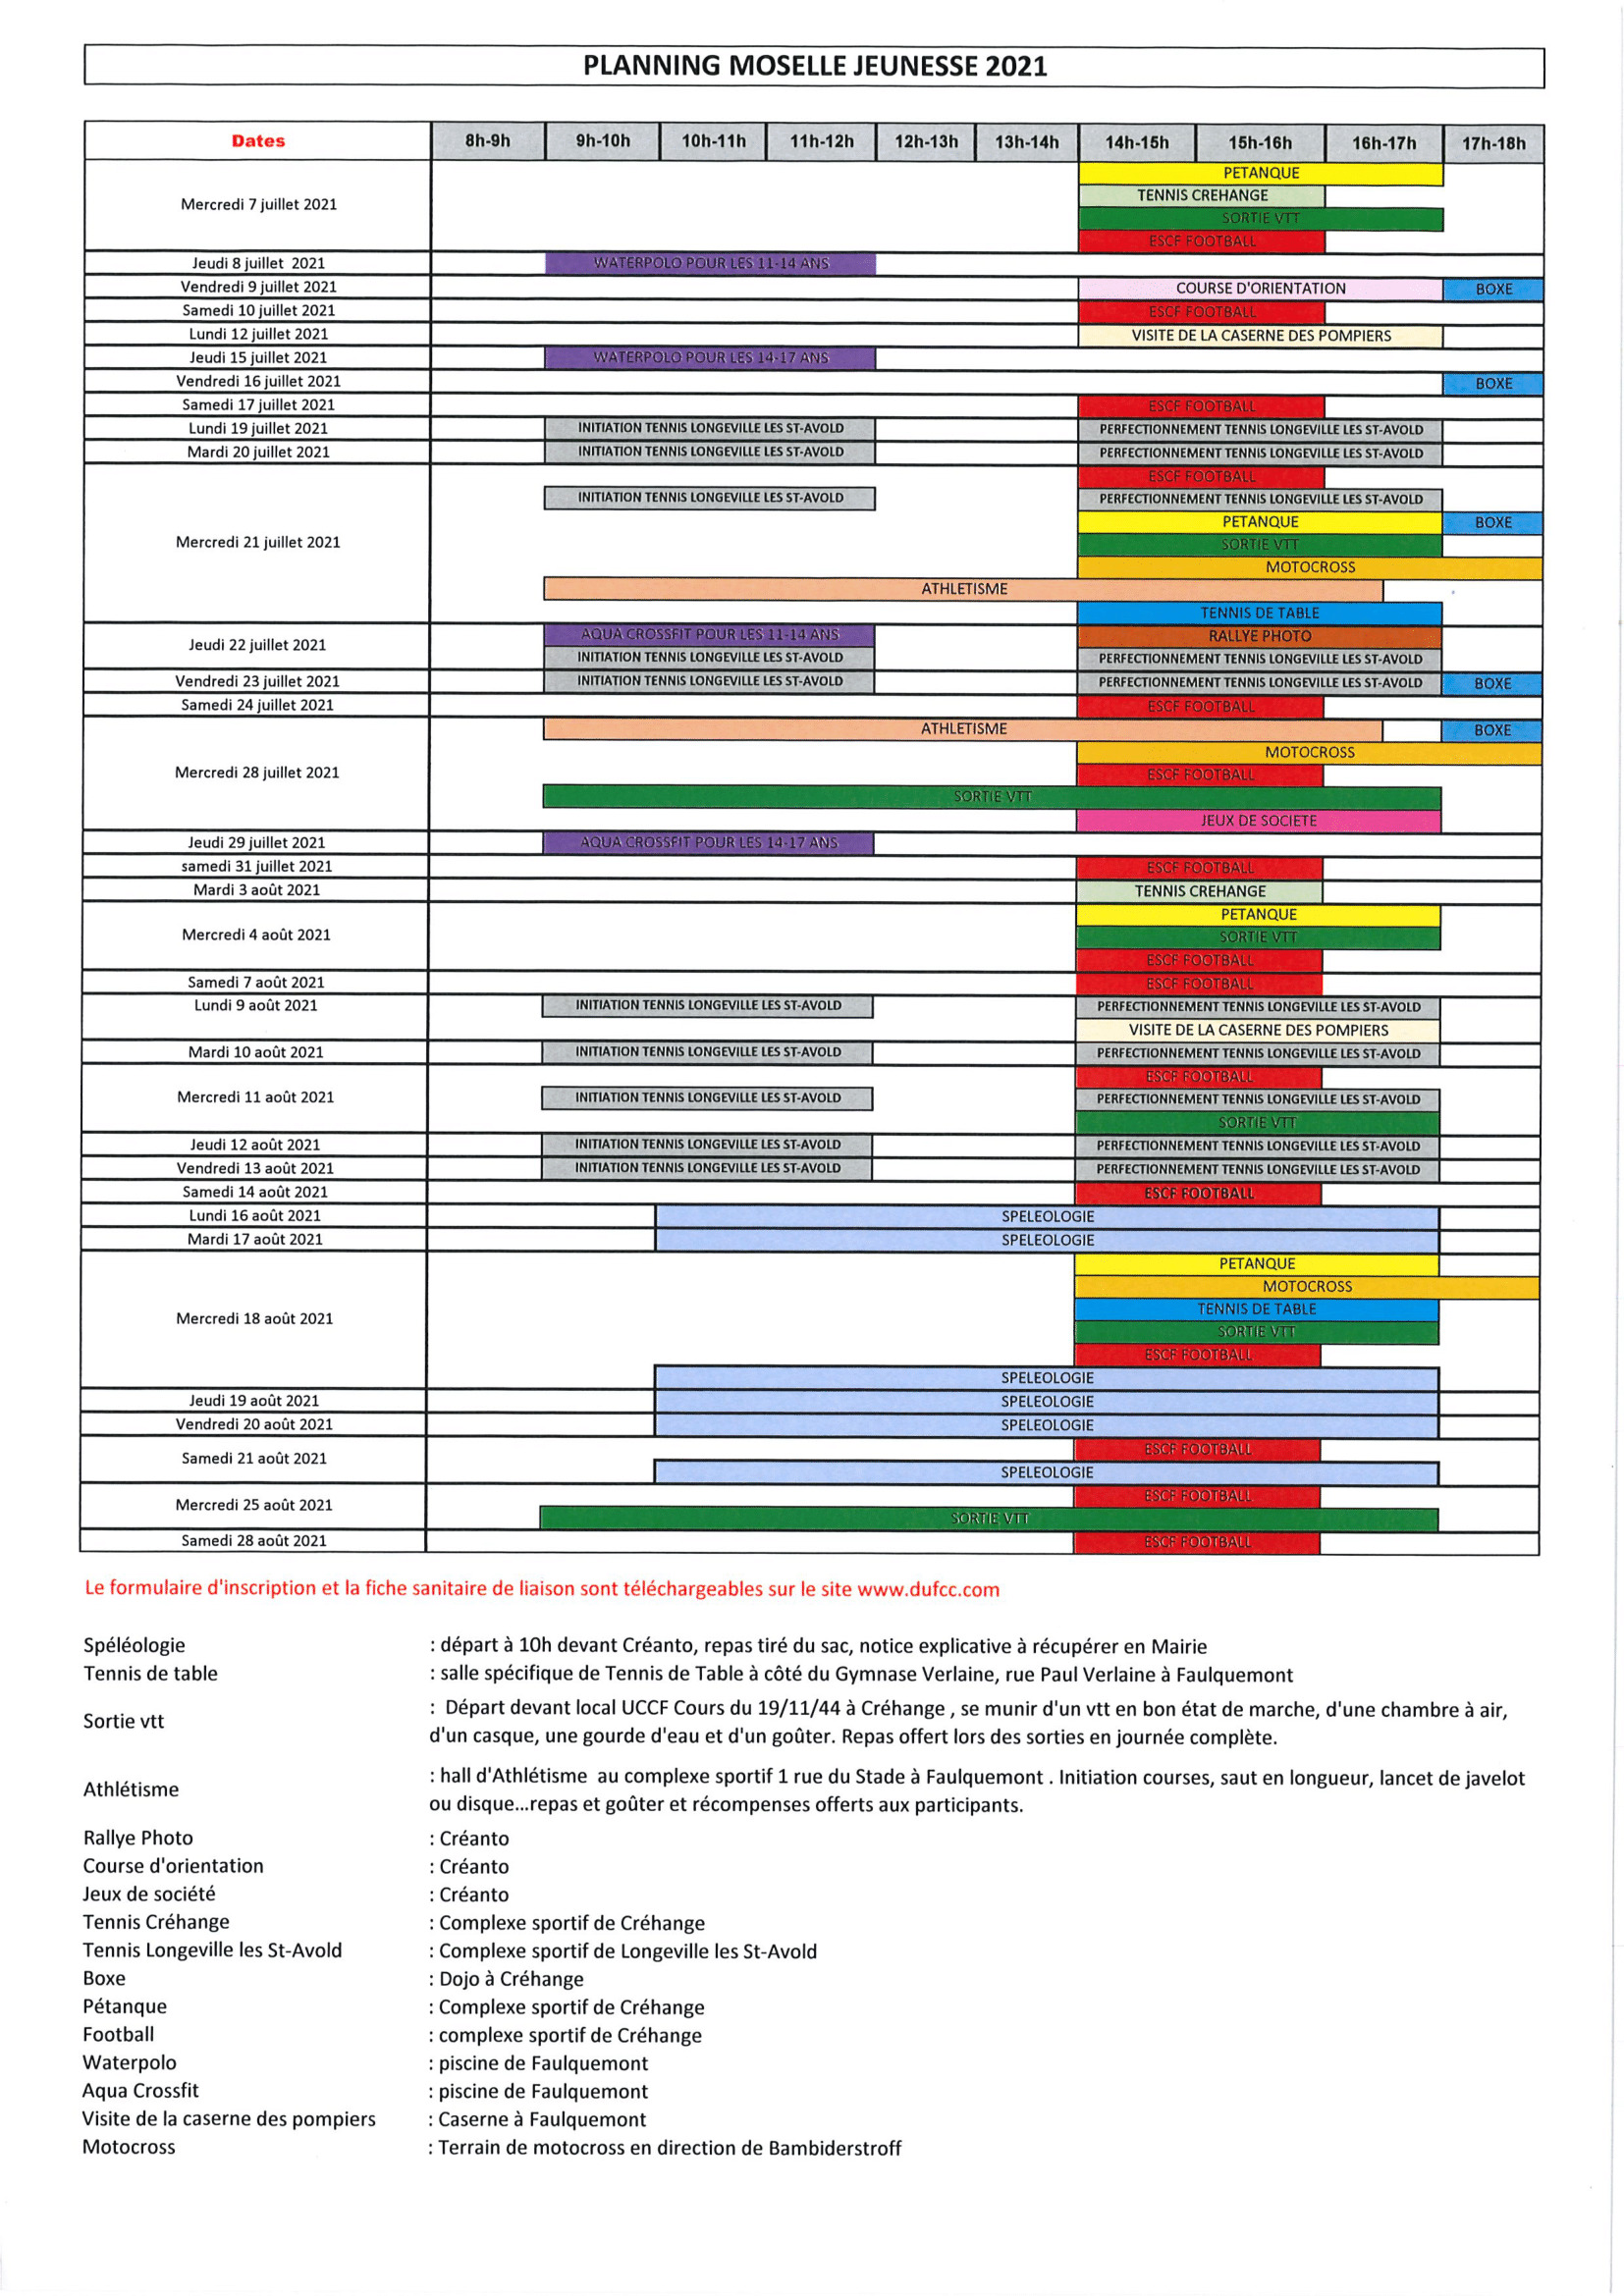 Planning Moselle Jeunesse 2021-1.png